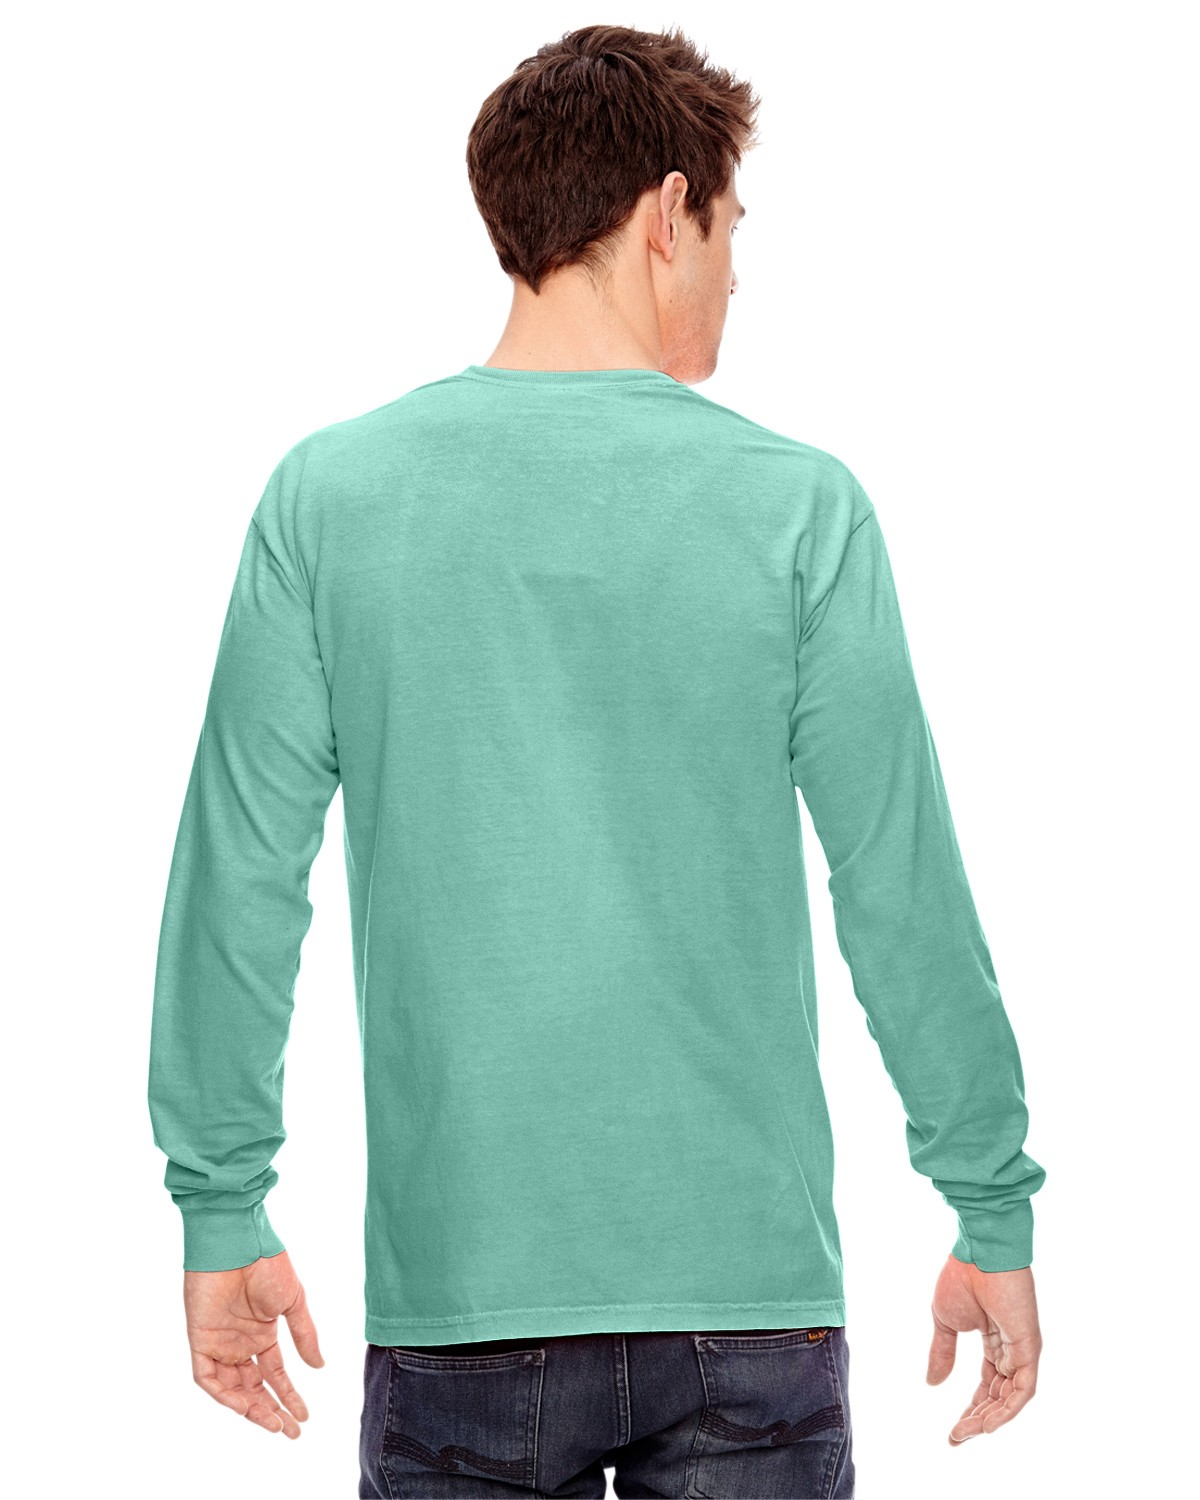 C6014 Comfort Colors ISLAND REEF